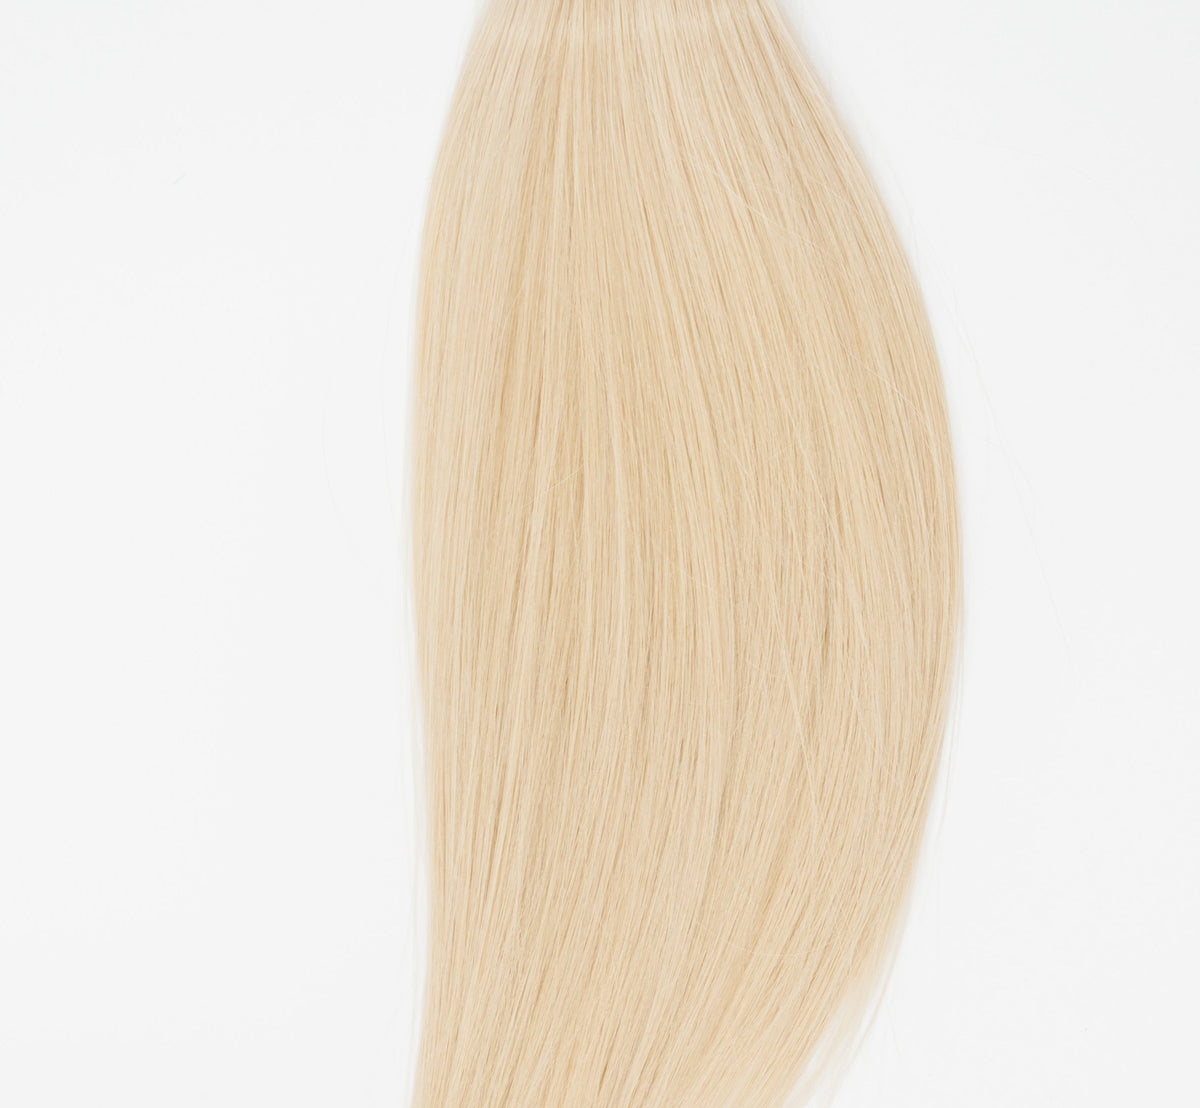 Laced Hair I-Tip Extensions #60 (Platinum)